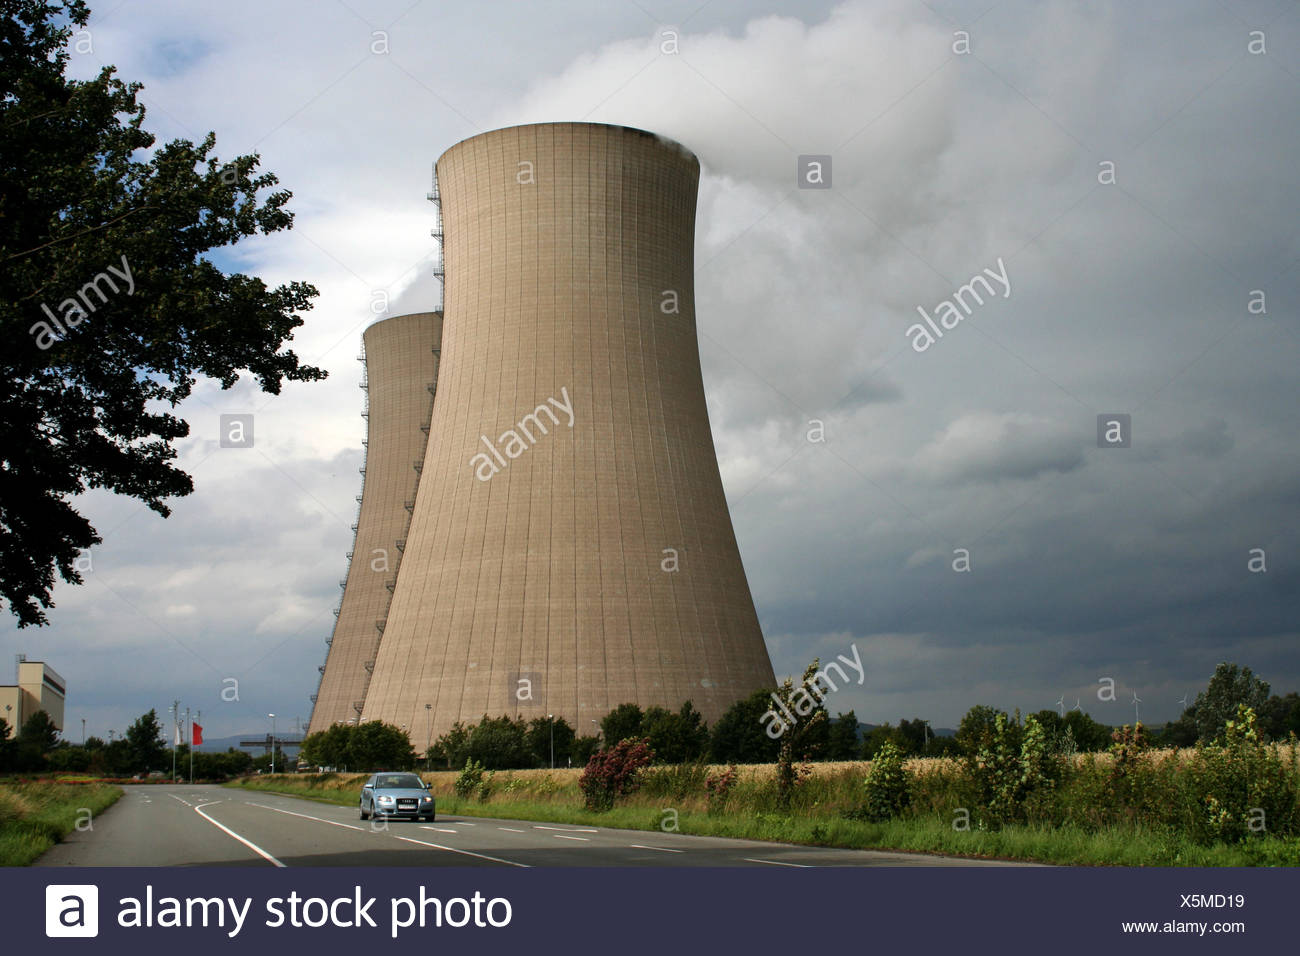 environment enviroment tree trees dome power station water vapor generation of - Stock Image